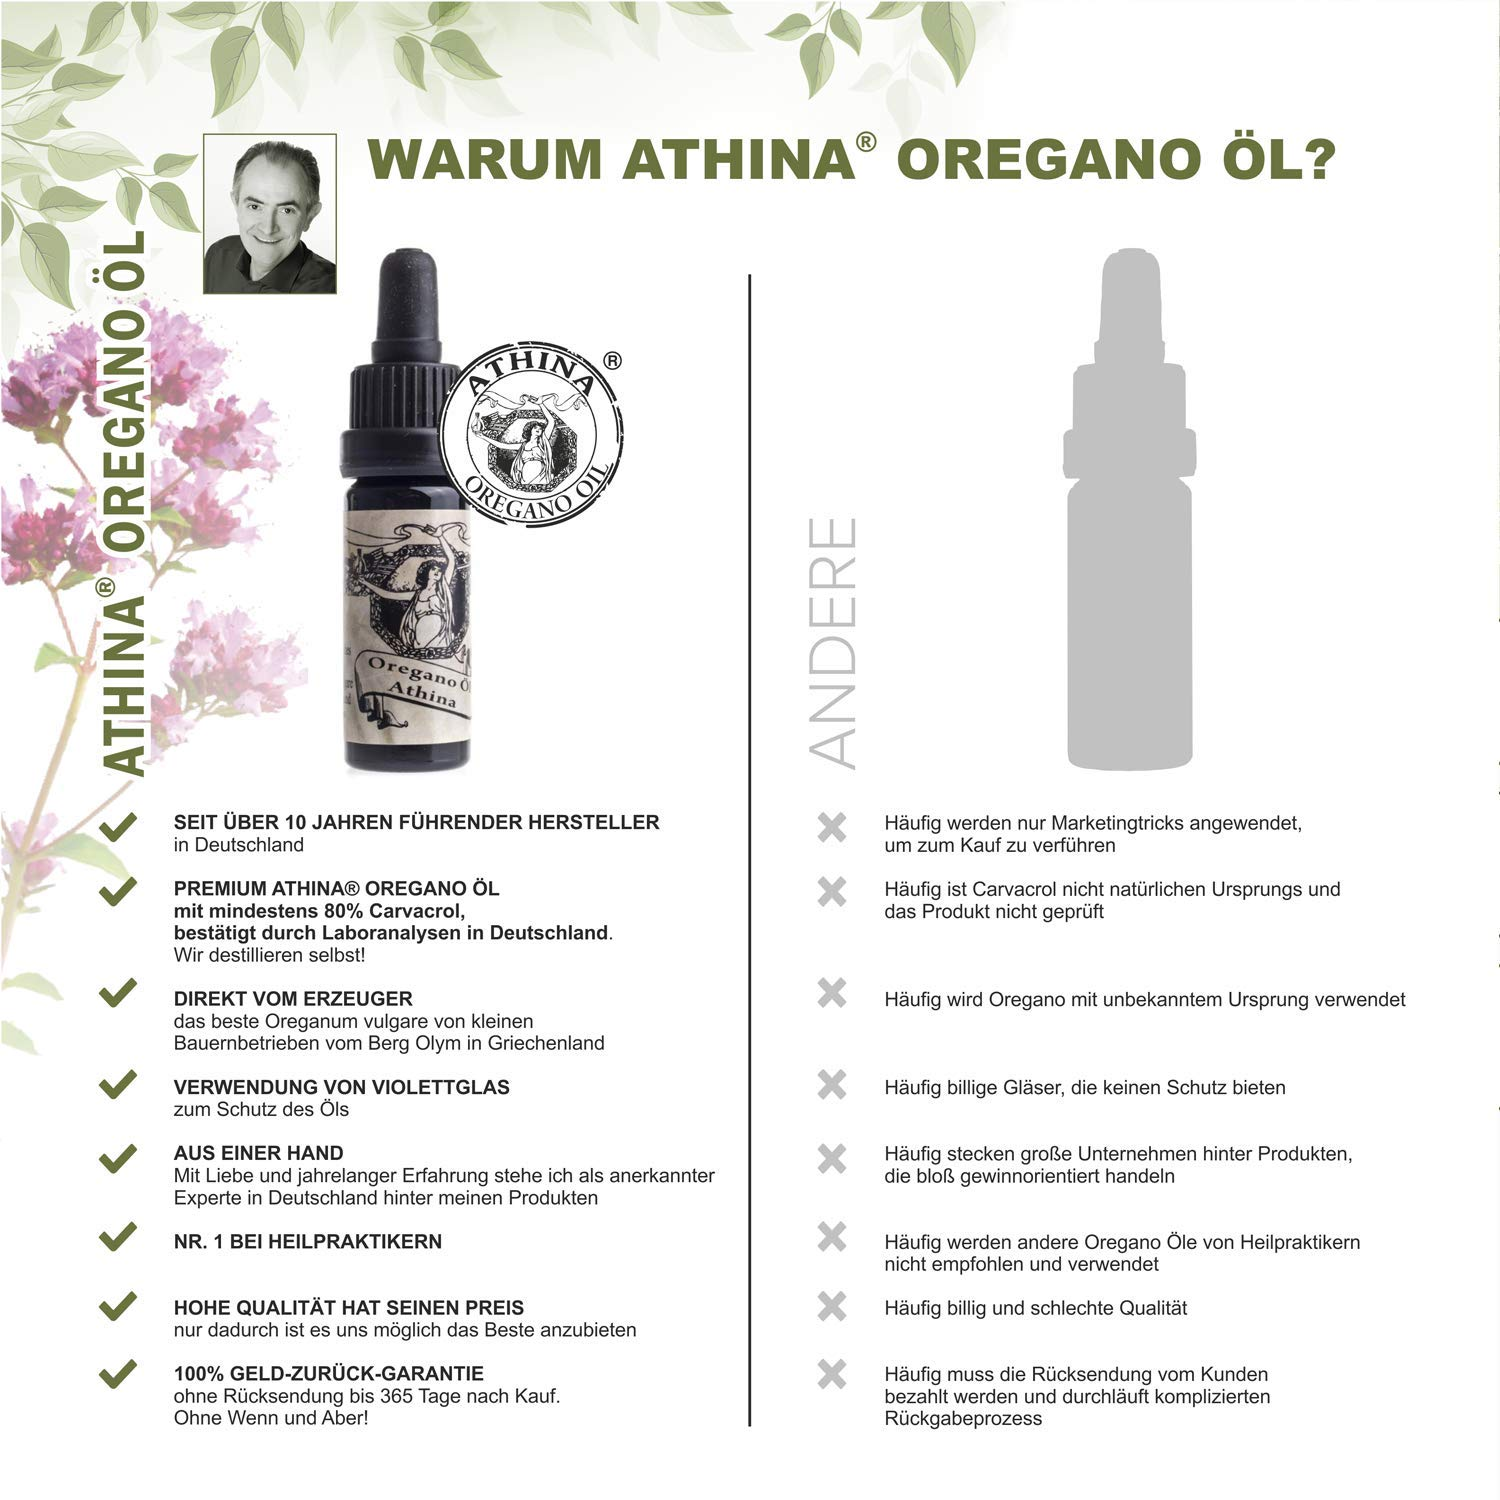 Organic Athina Oregano Oil 100 Essential Oregano Vulgare Oil From Greece 80 Carvacrol 1 X 10 Ml